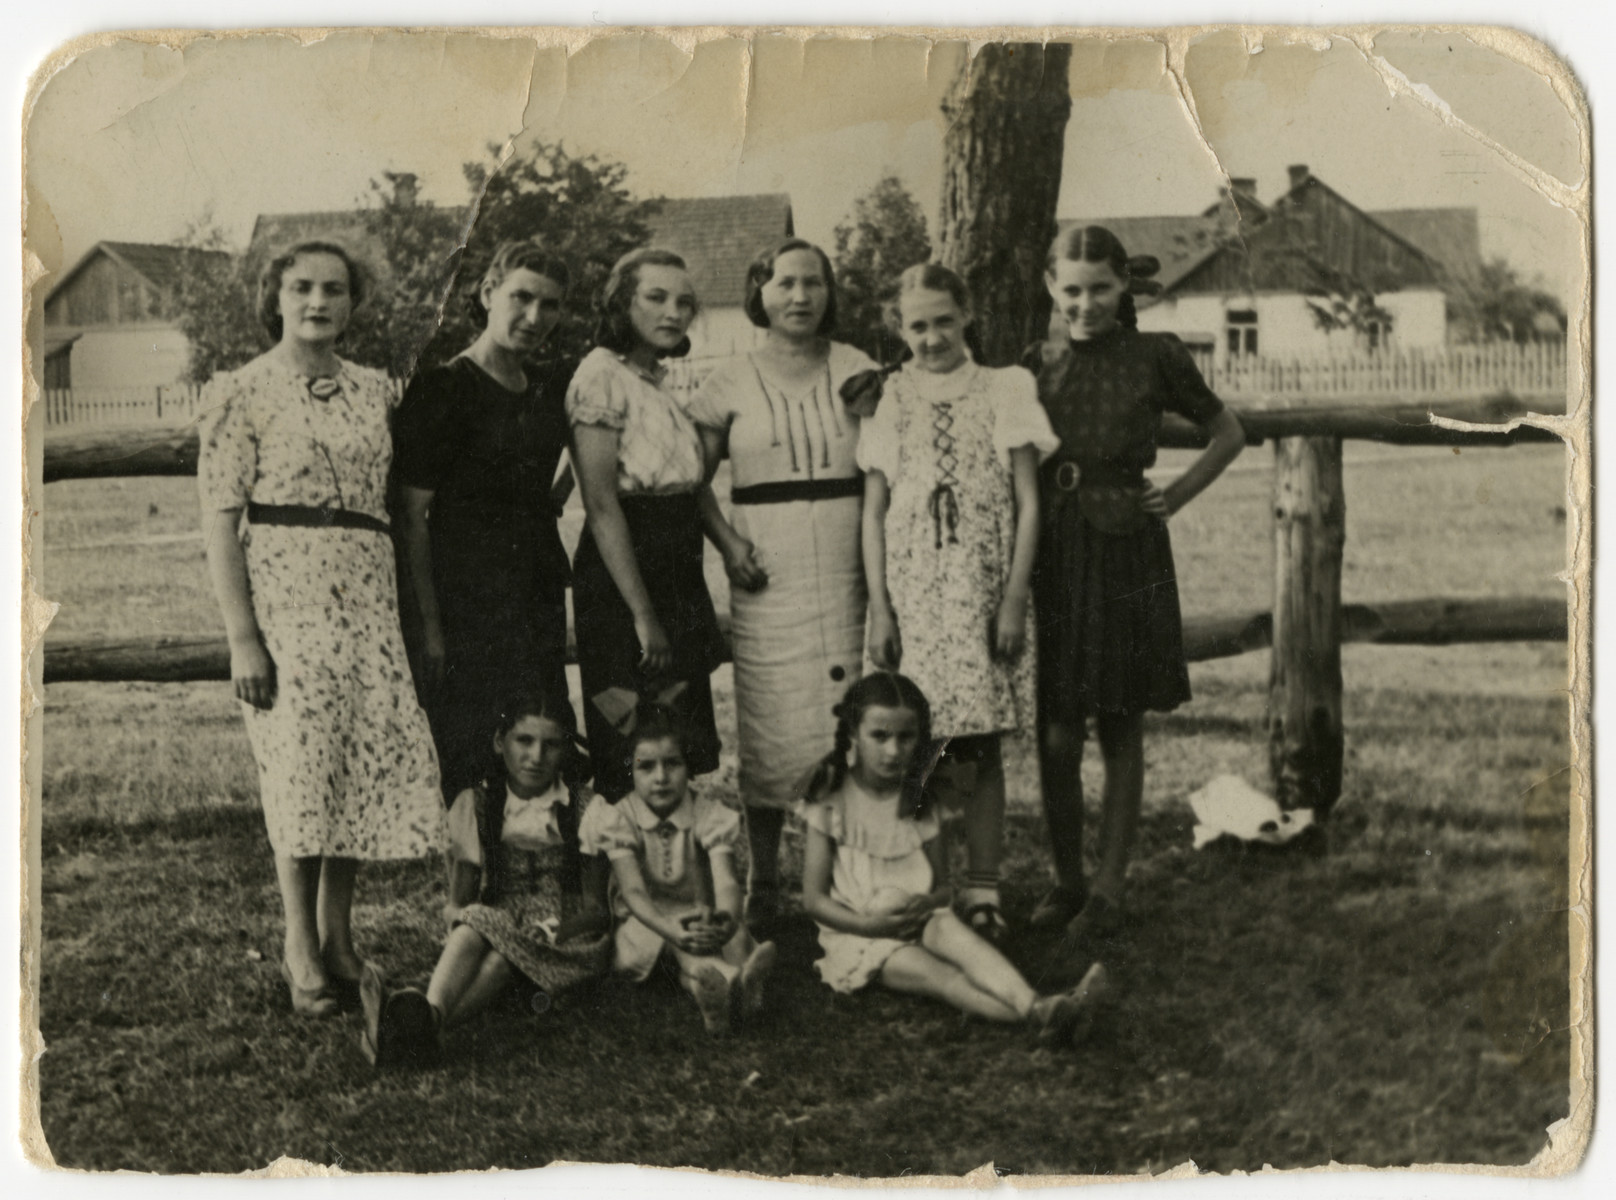 Group portrait of woman and children standing outside in Warsaw before the war.  Among those pictured is  Sura Kupersztajn, Clara's  sister-in-law, who perished during the Holocaust.